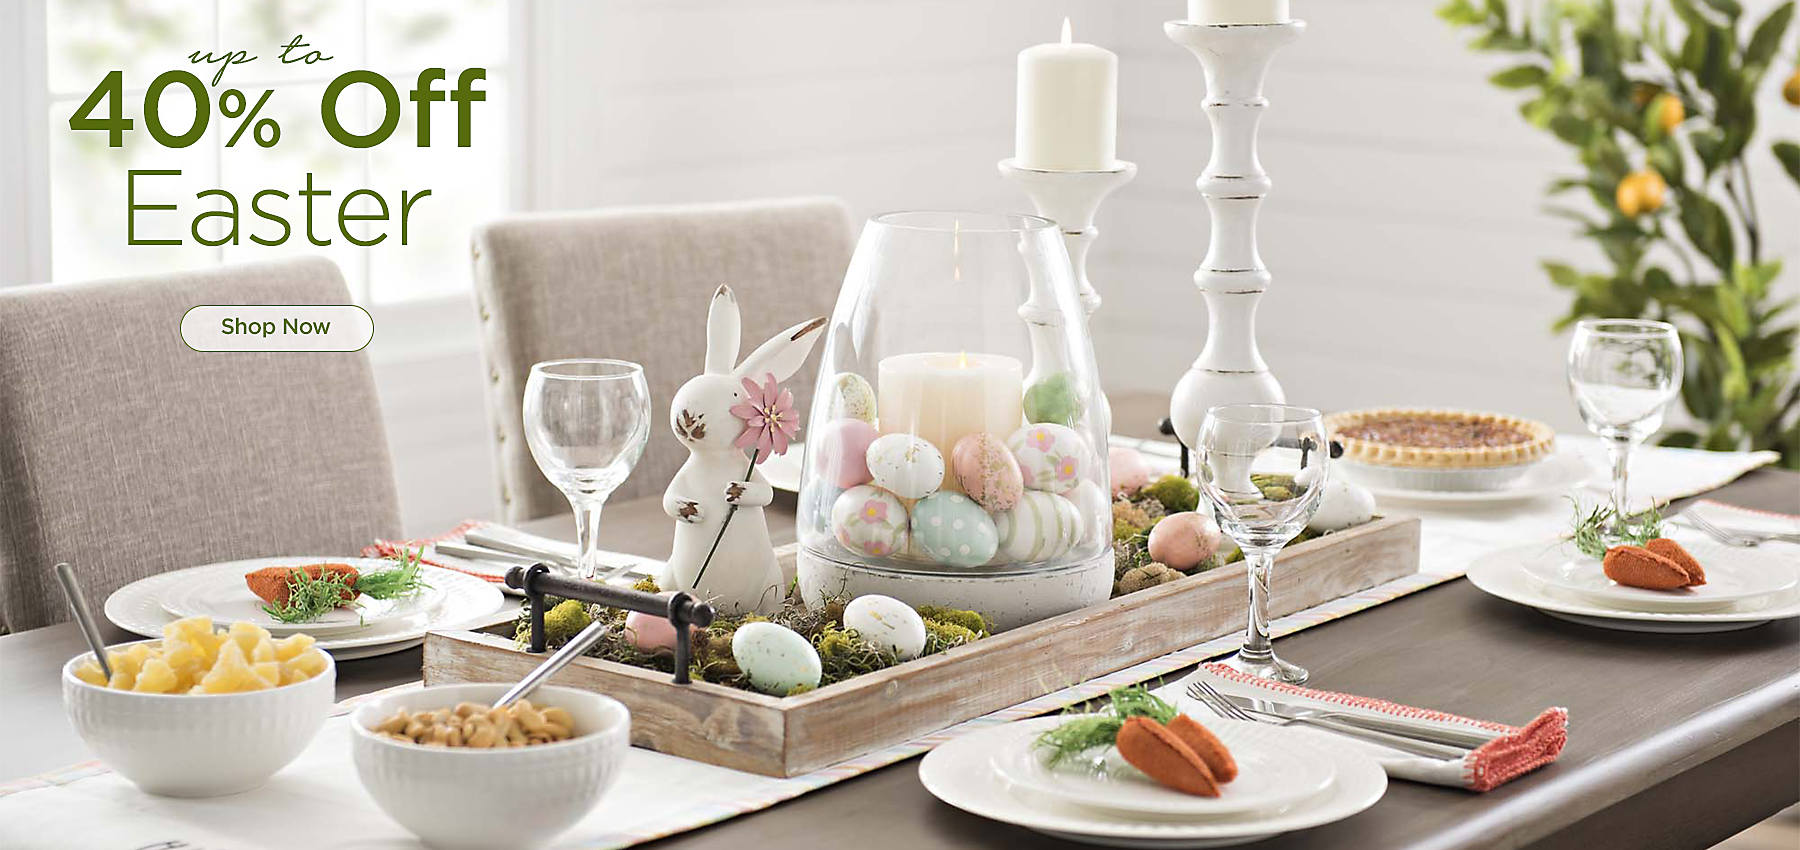 Up to 40% Off - Shop Easter